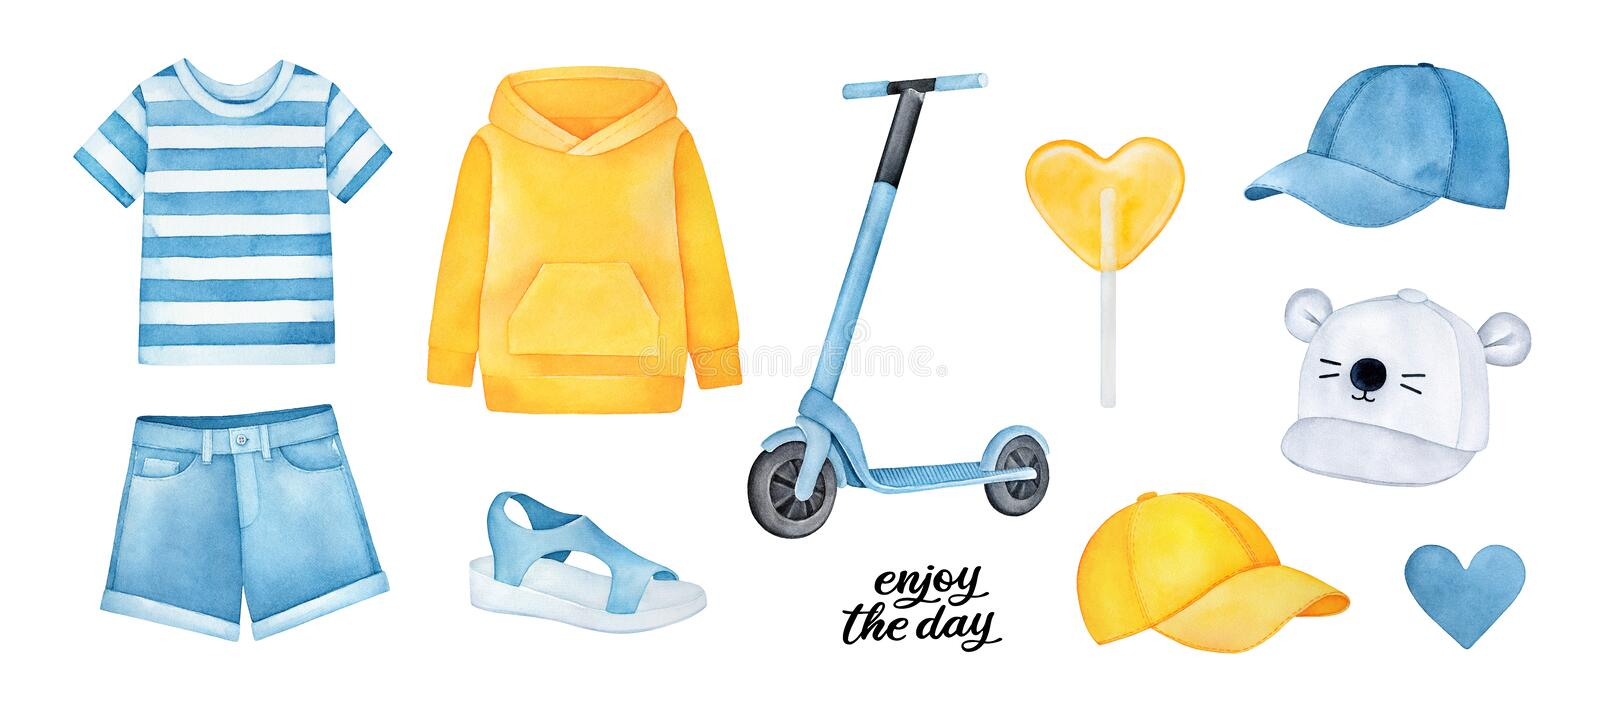 Cute collection of sportive clothes and accessories: shorts, t-shirt, baseball caps, kick scooter, warm hoodie and sandals. stock illustration